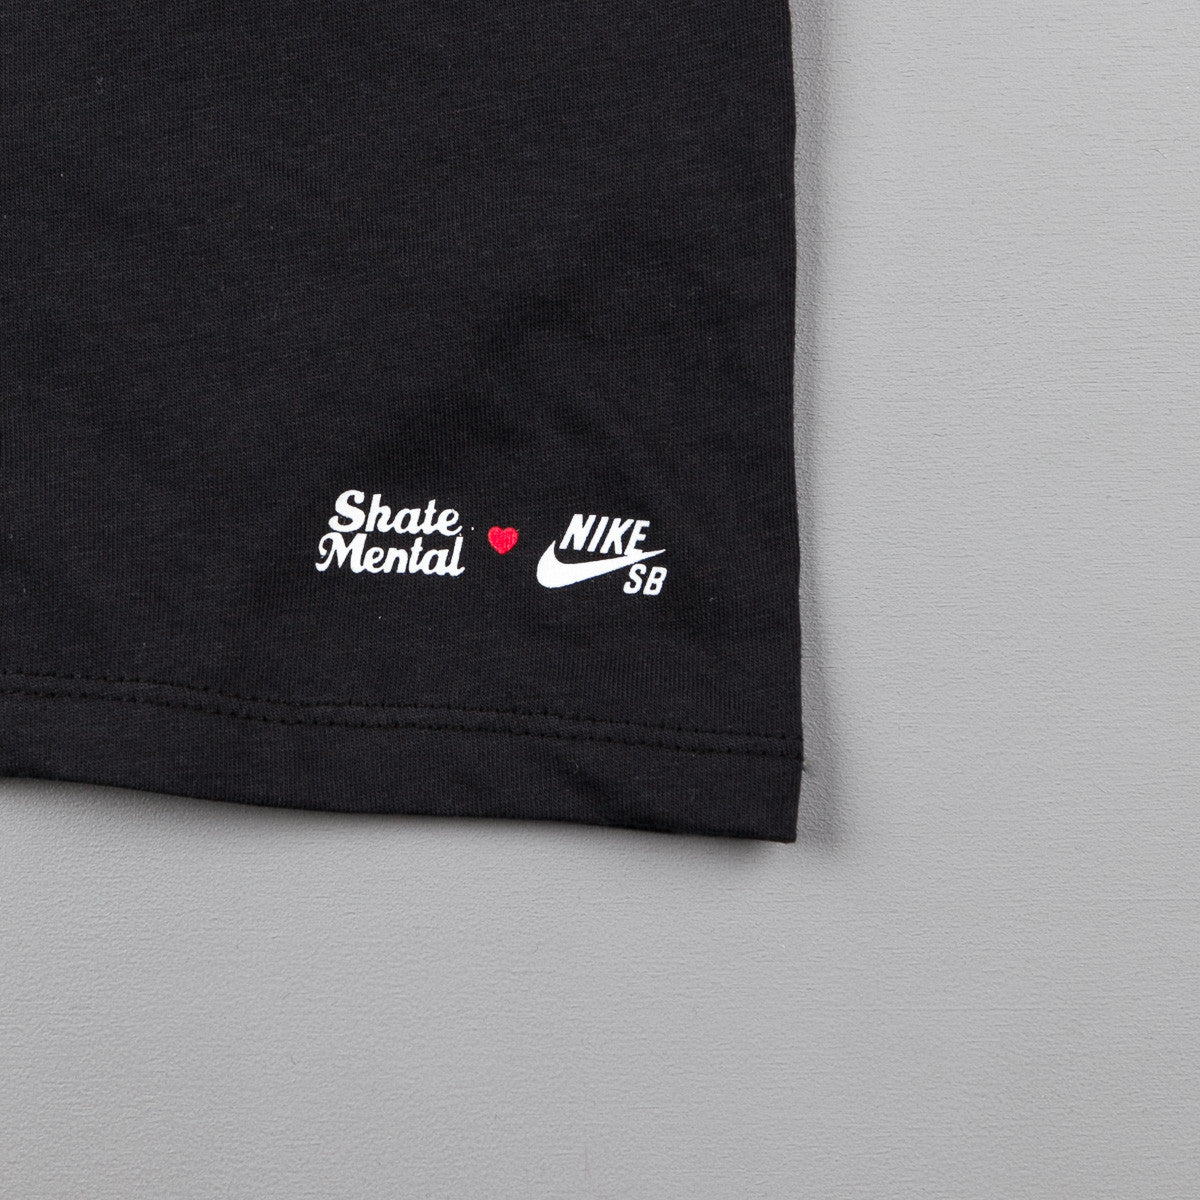 Nike SB x Skate Mental NY Long Sleeve T-Shirt - Black